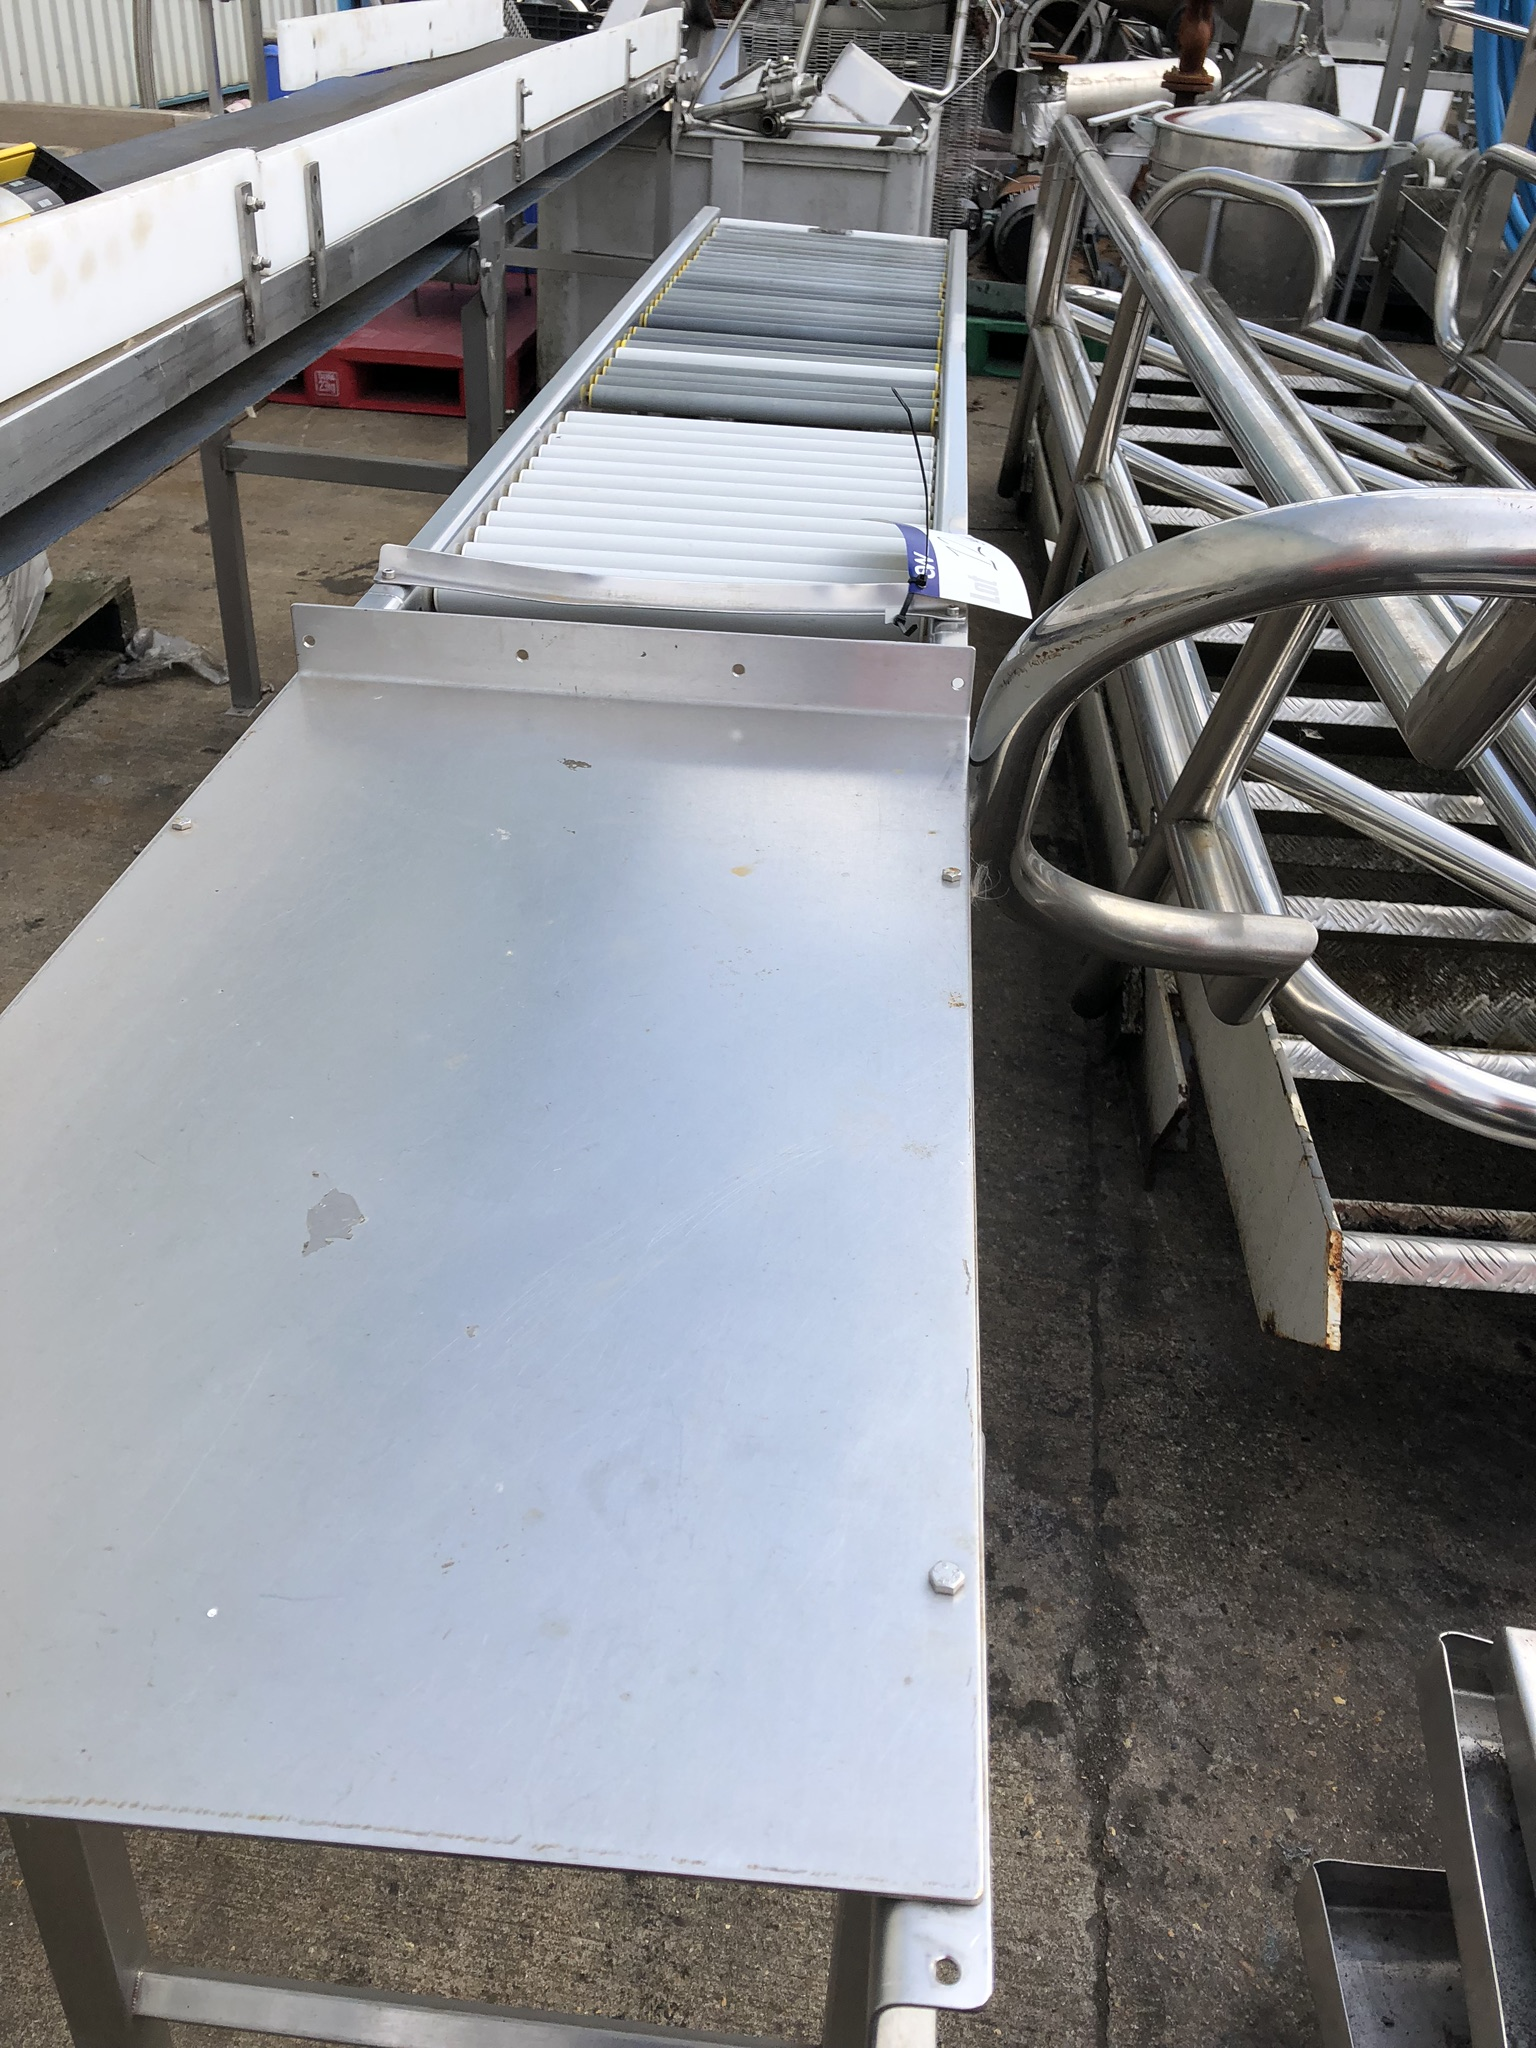 Roller Conveyor, approx. 3m x 450mm wide x 800mm high, with Stand, lift out charge - £30 - Image 2 of 2